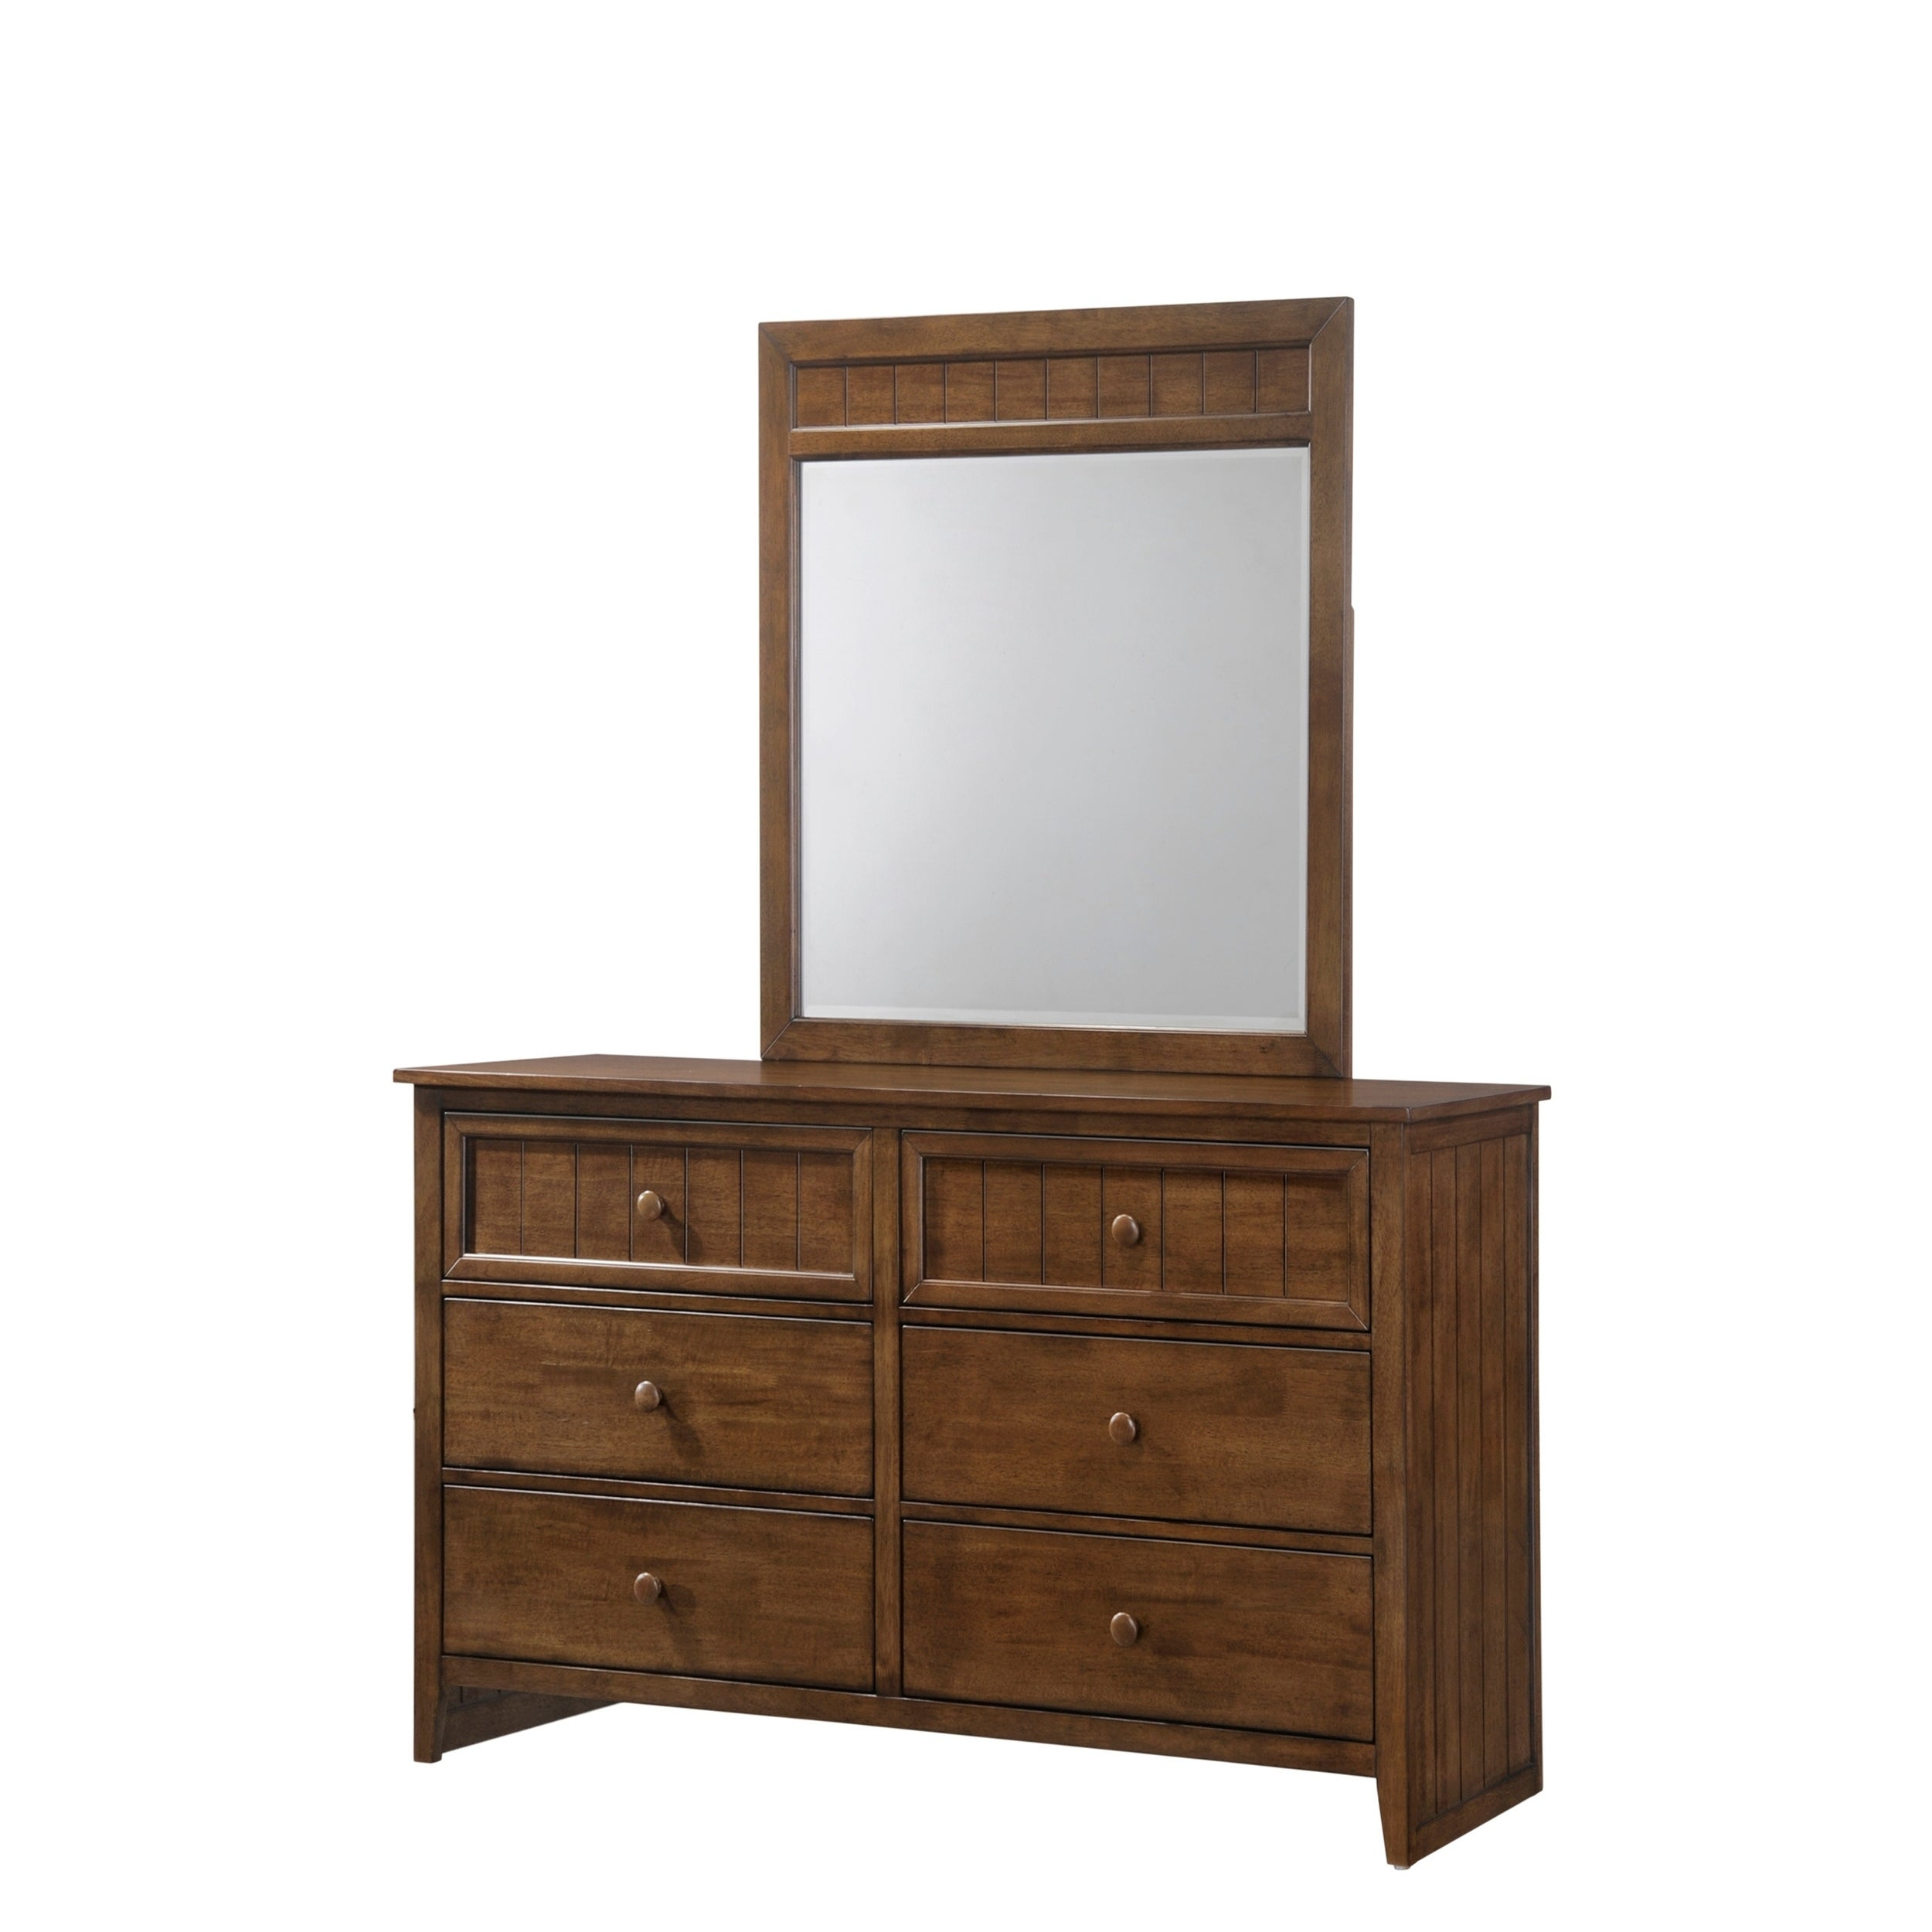 Shop Simmons Ashland Wood Dresser  Free Shipping Today